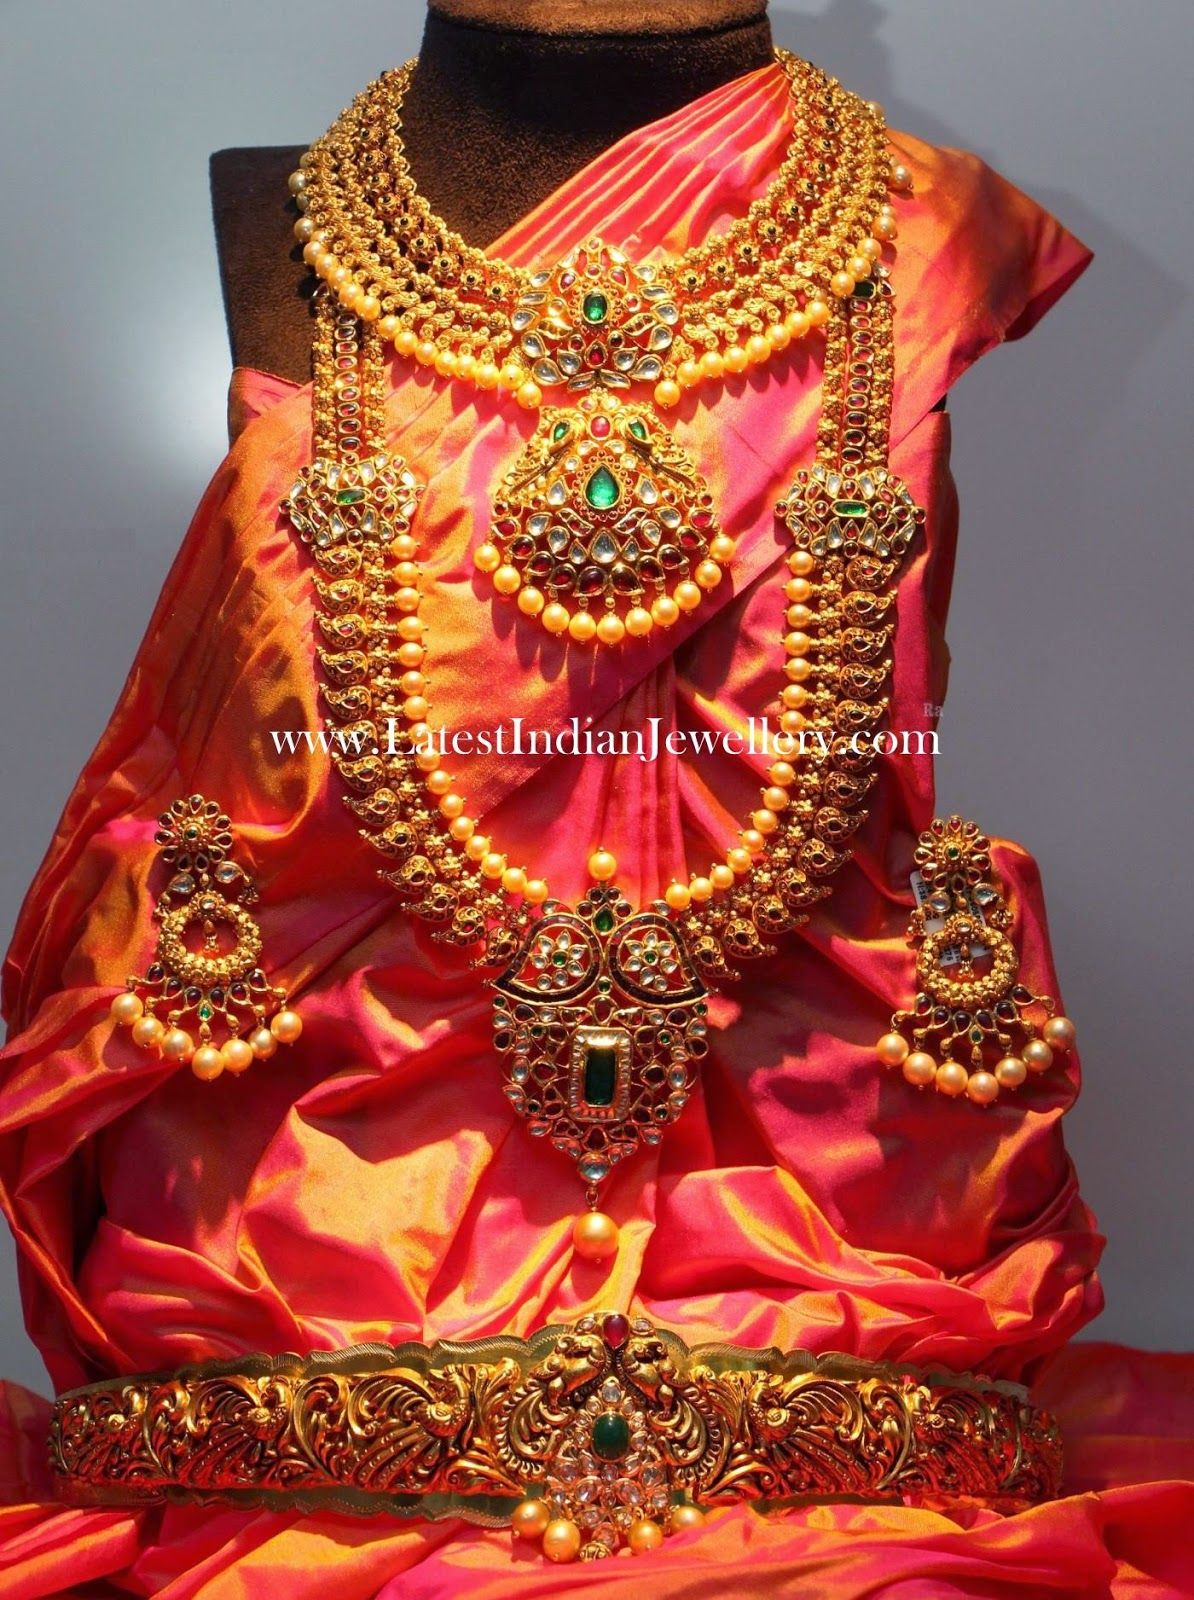 Complete Indian Wedding Jewellery Set in Gold Indian wedding